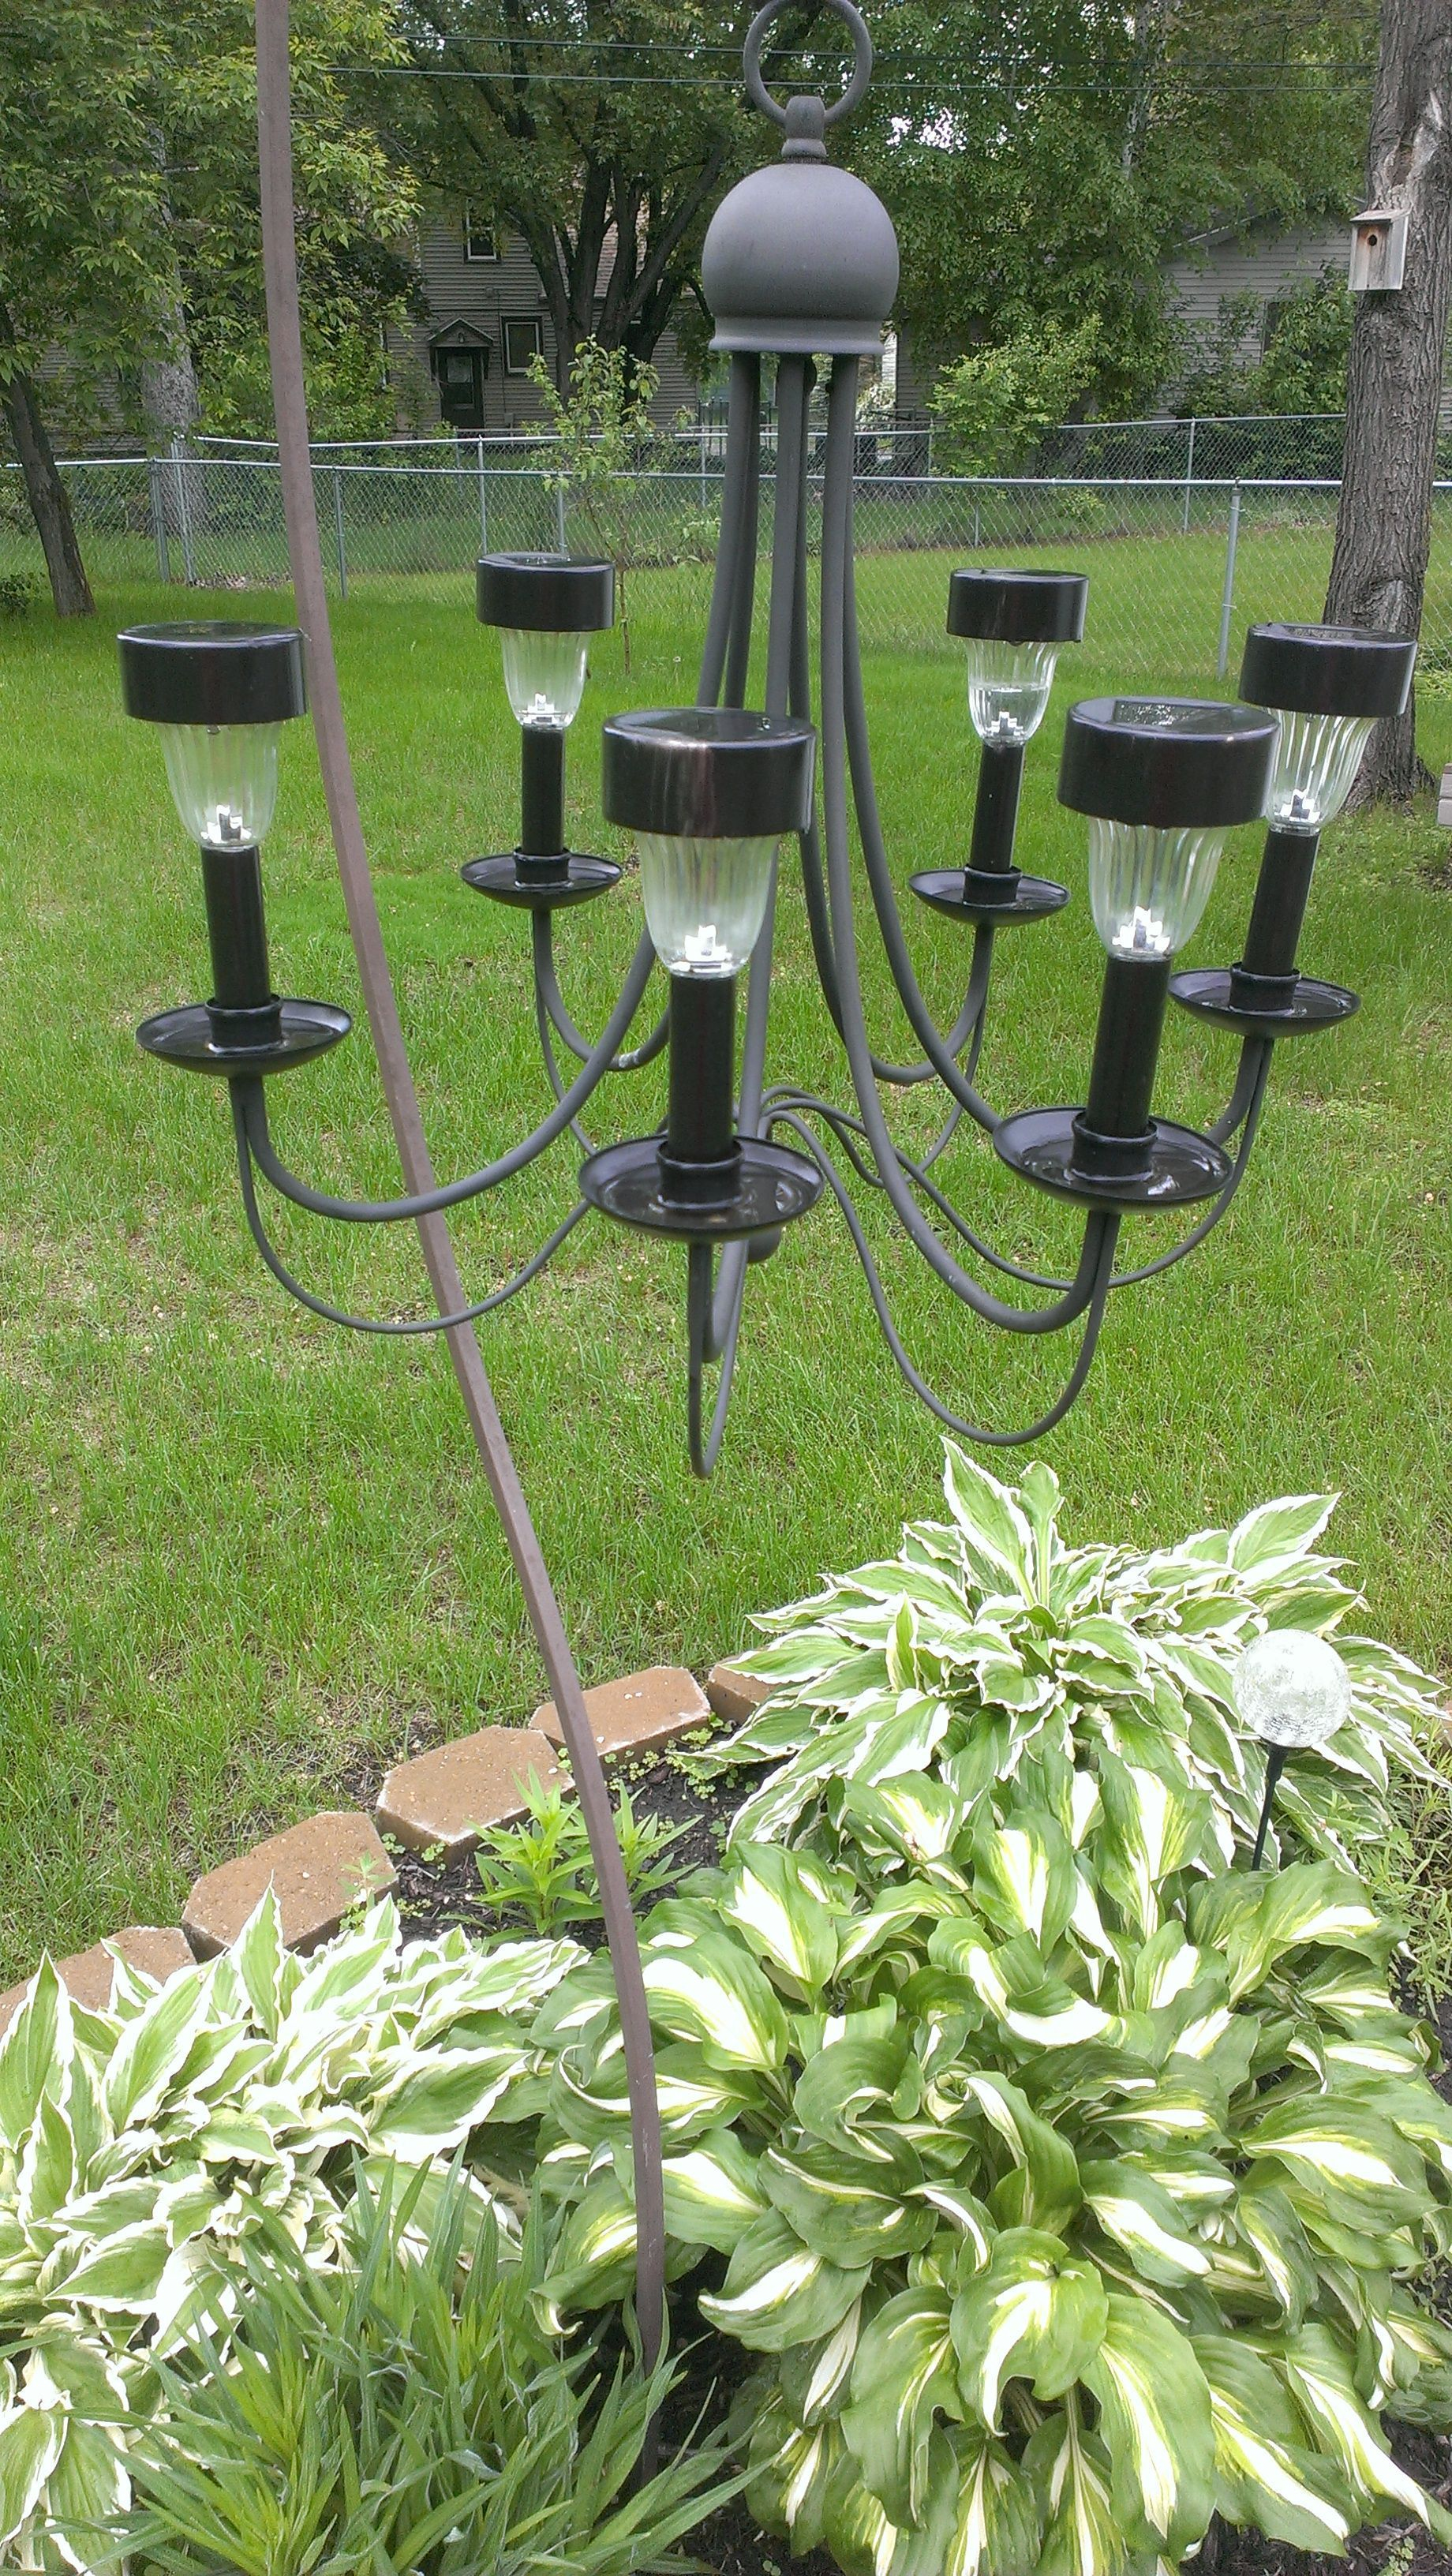 Repurposed a chandelier from a thrift shop into a outdoor solar repurposed a chandelier from a thrift shop into a outdoor solar light chandelier hangs beautifully arubaitofo Choice Image